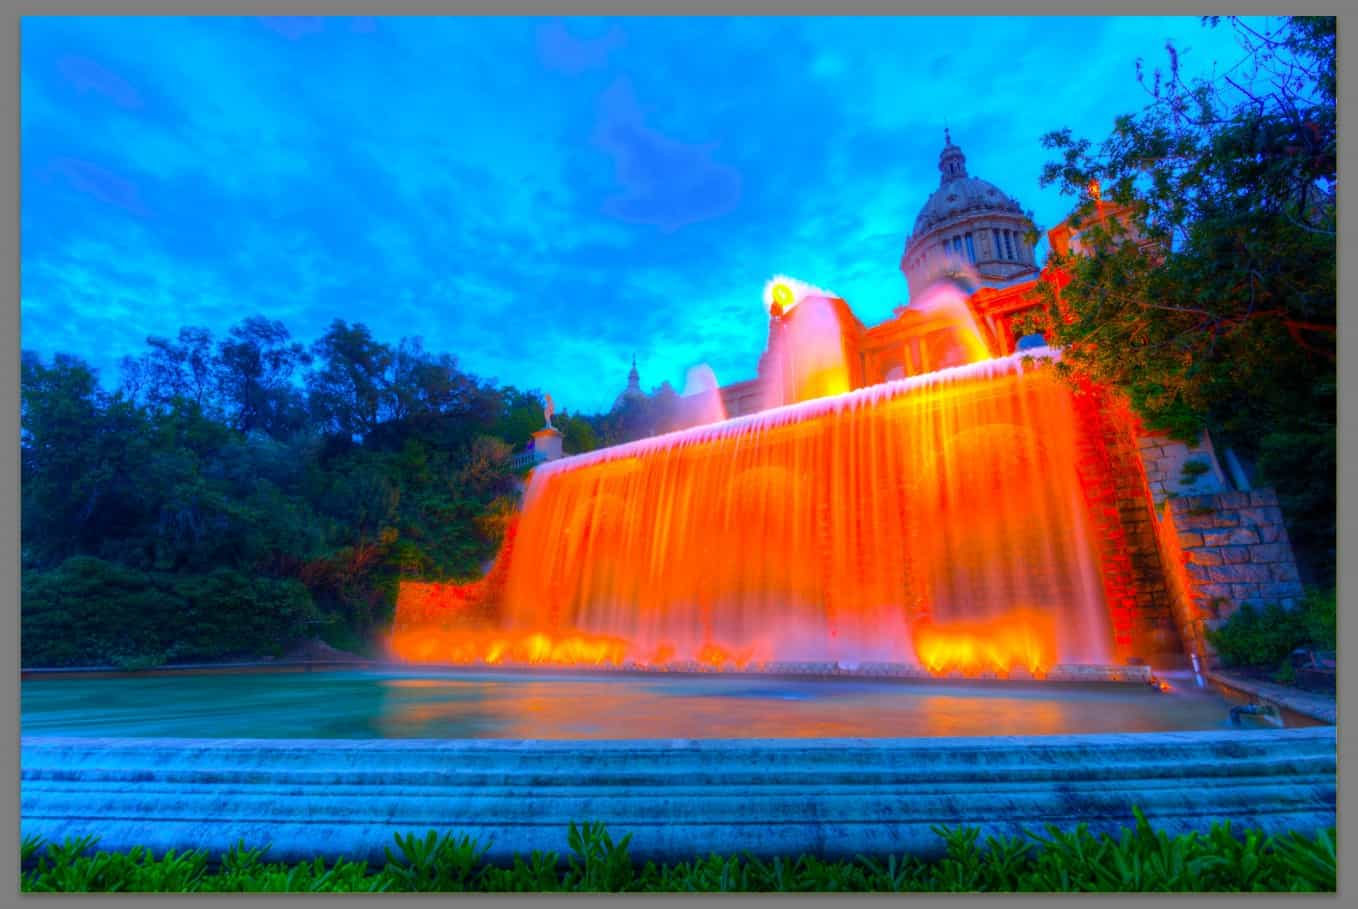 Photo of orange building and waterfall - neon - saturated